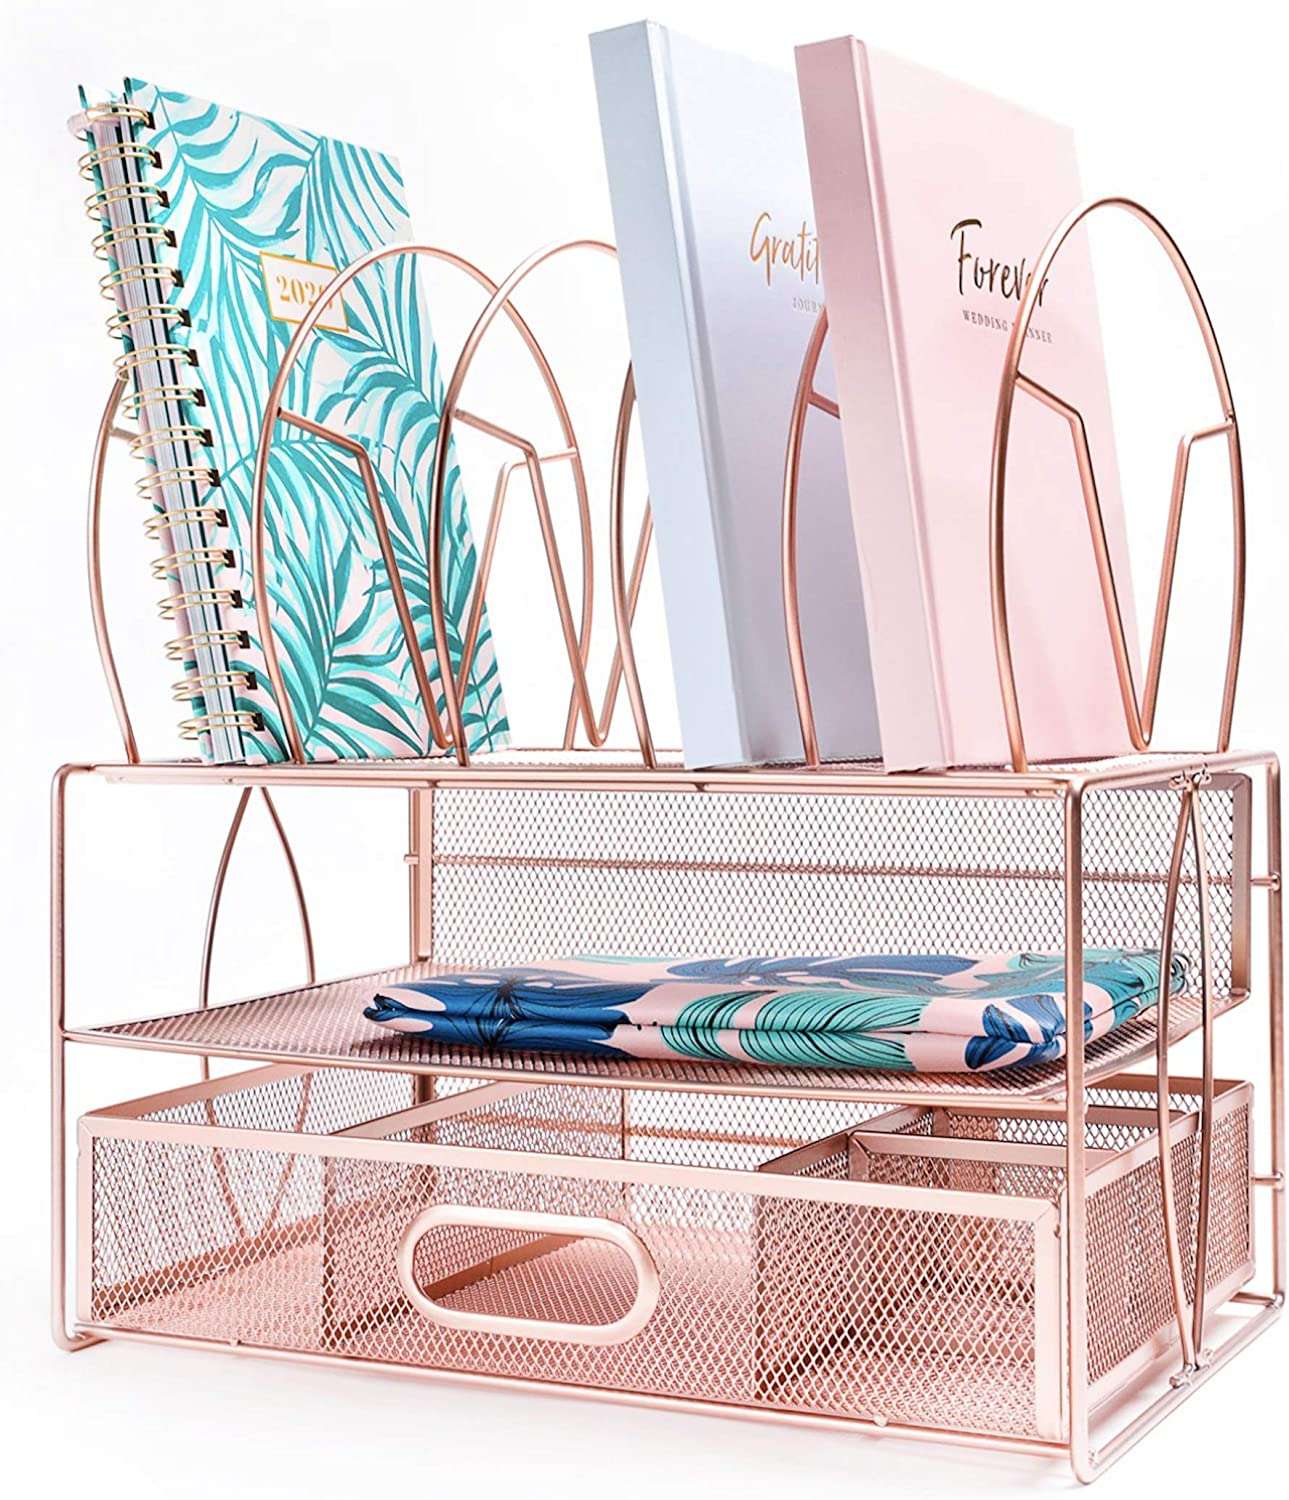 IKORA Rose Gold Office Desk Organizer & Desk Accessories For Women. Multifunctional workspace organizer for papers, documents, files, folders, pens, accessories and office supplies